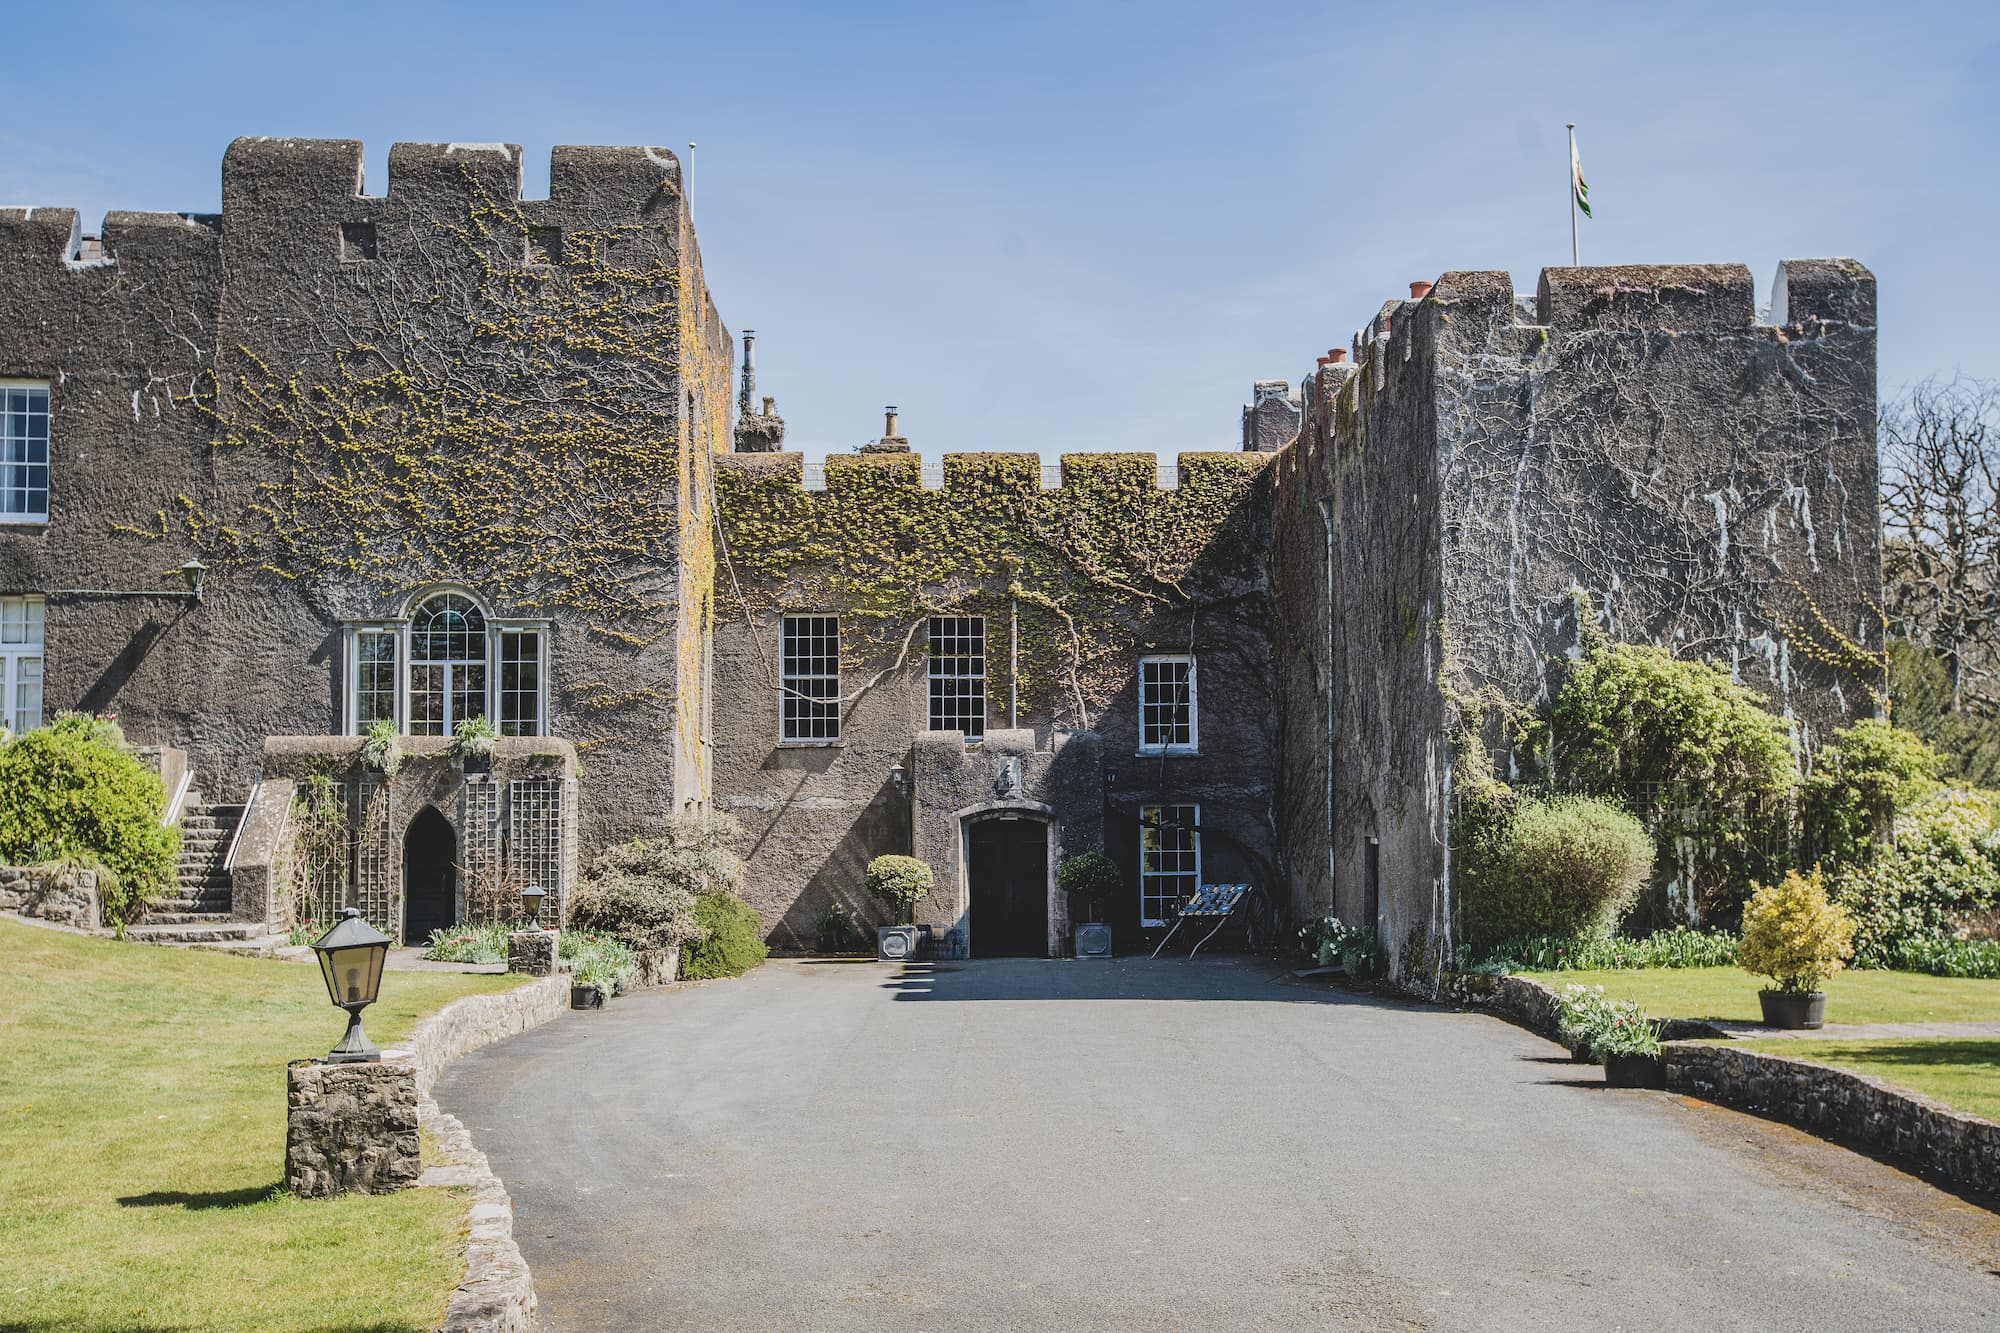 The front of the castle partly covered in climbing plants. There is a green lawn in front and a wide driveway.